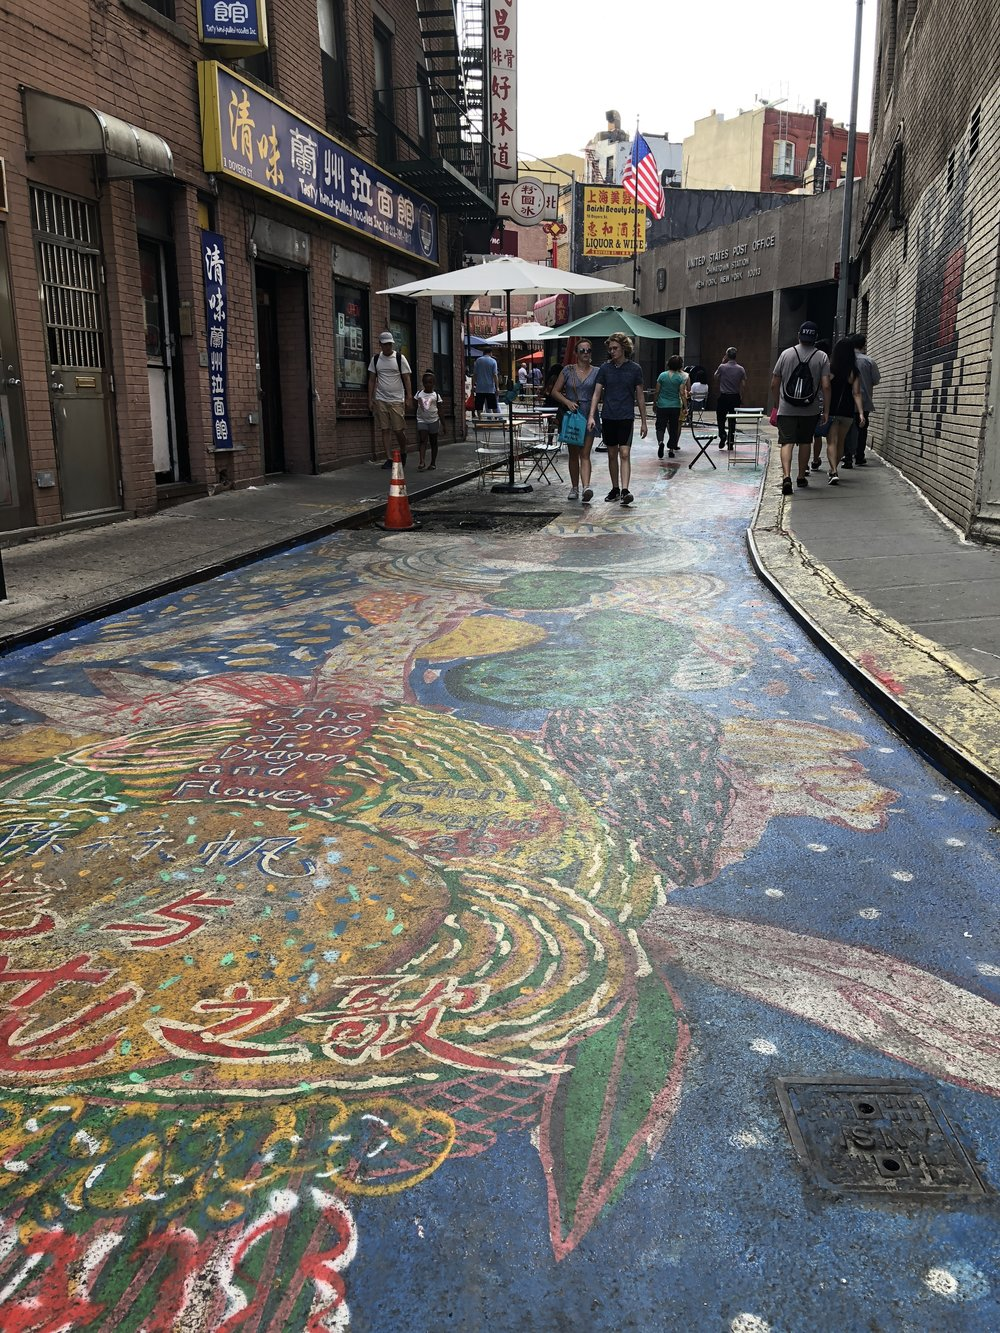 A mural on the street by artist Chen Donfan: The Song of Dragon and Flowers.